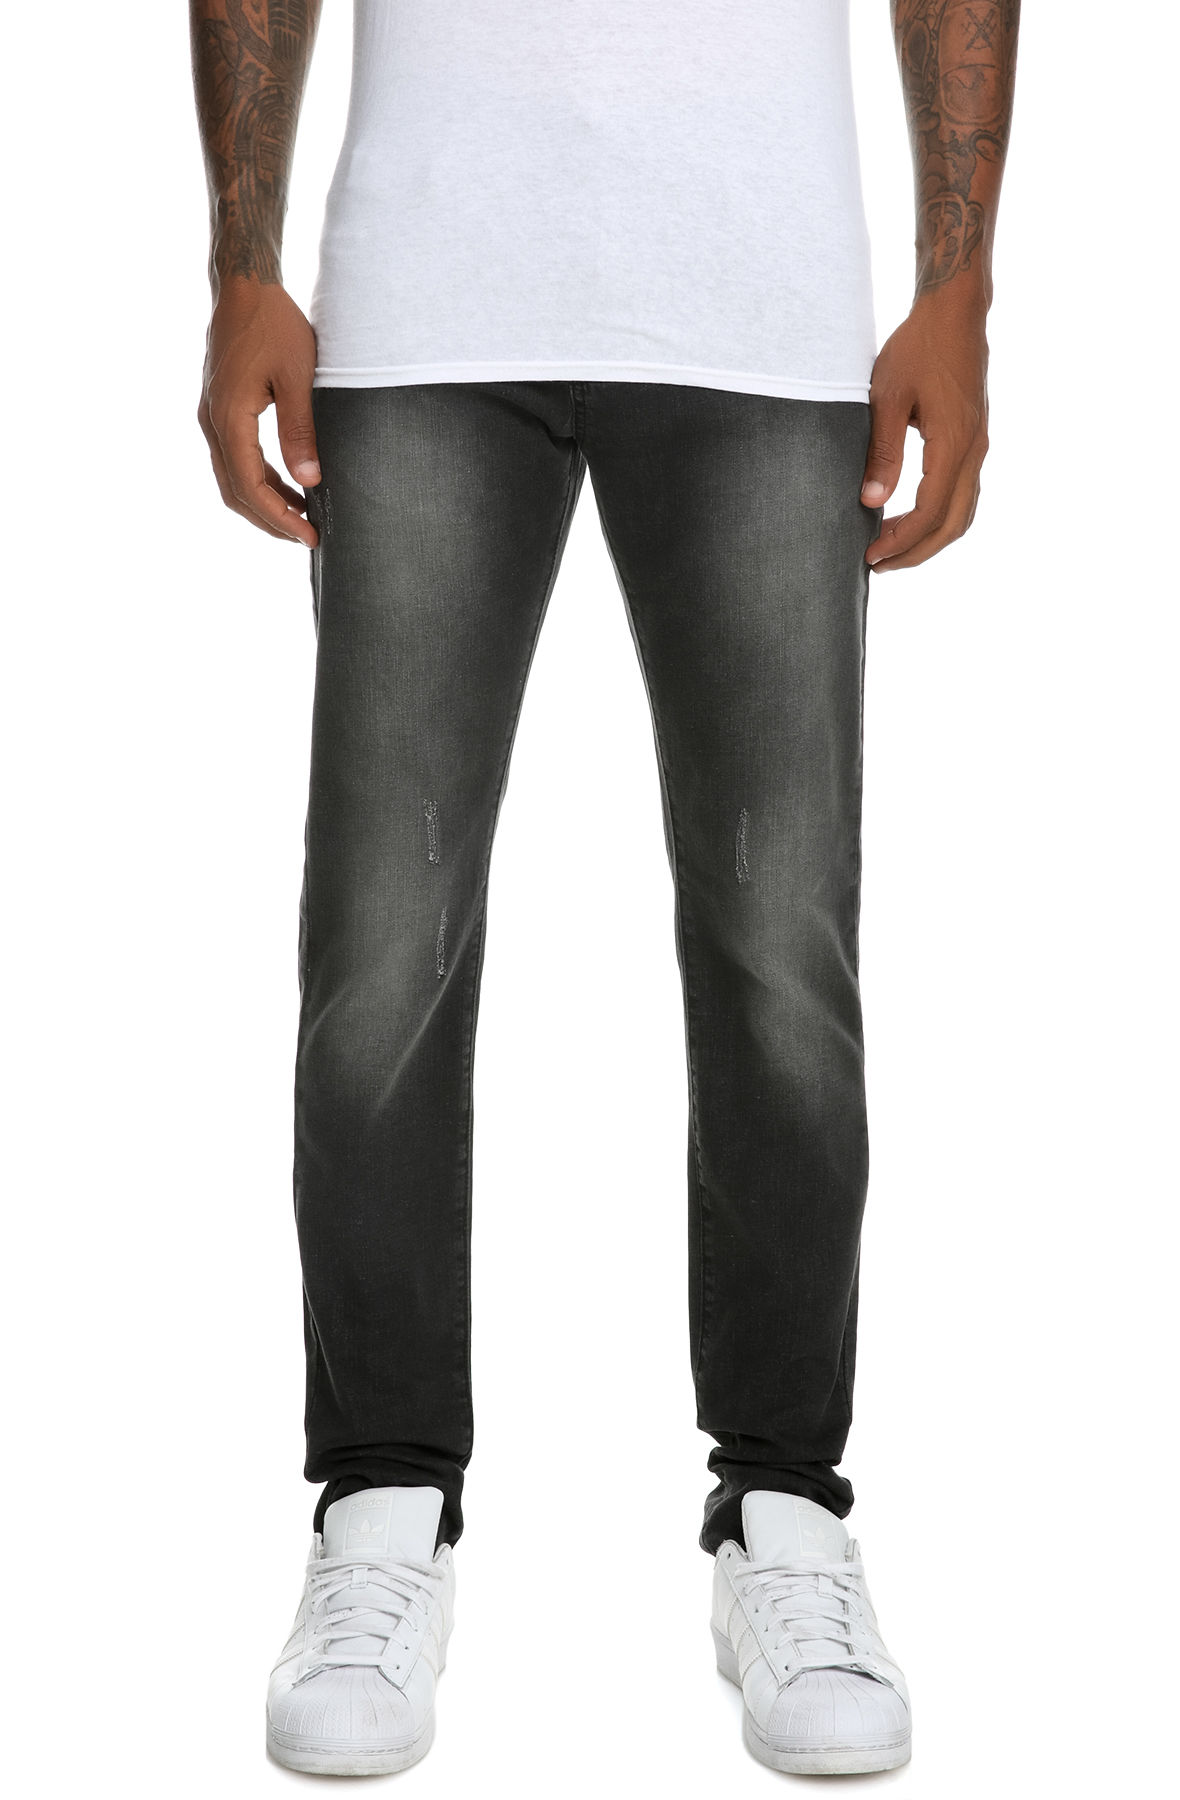 Image of The Rome Jeans in Black